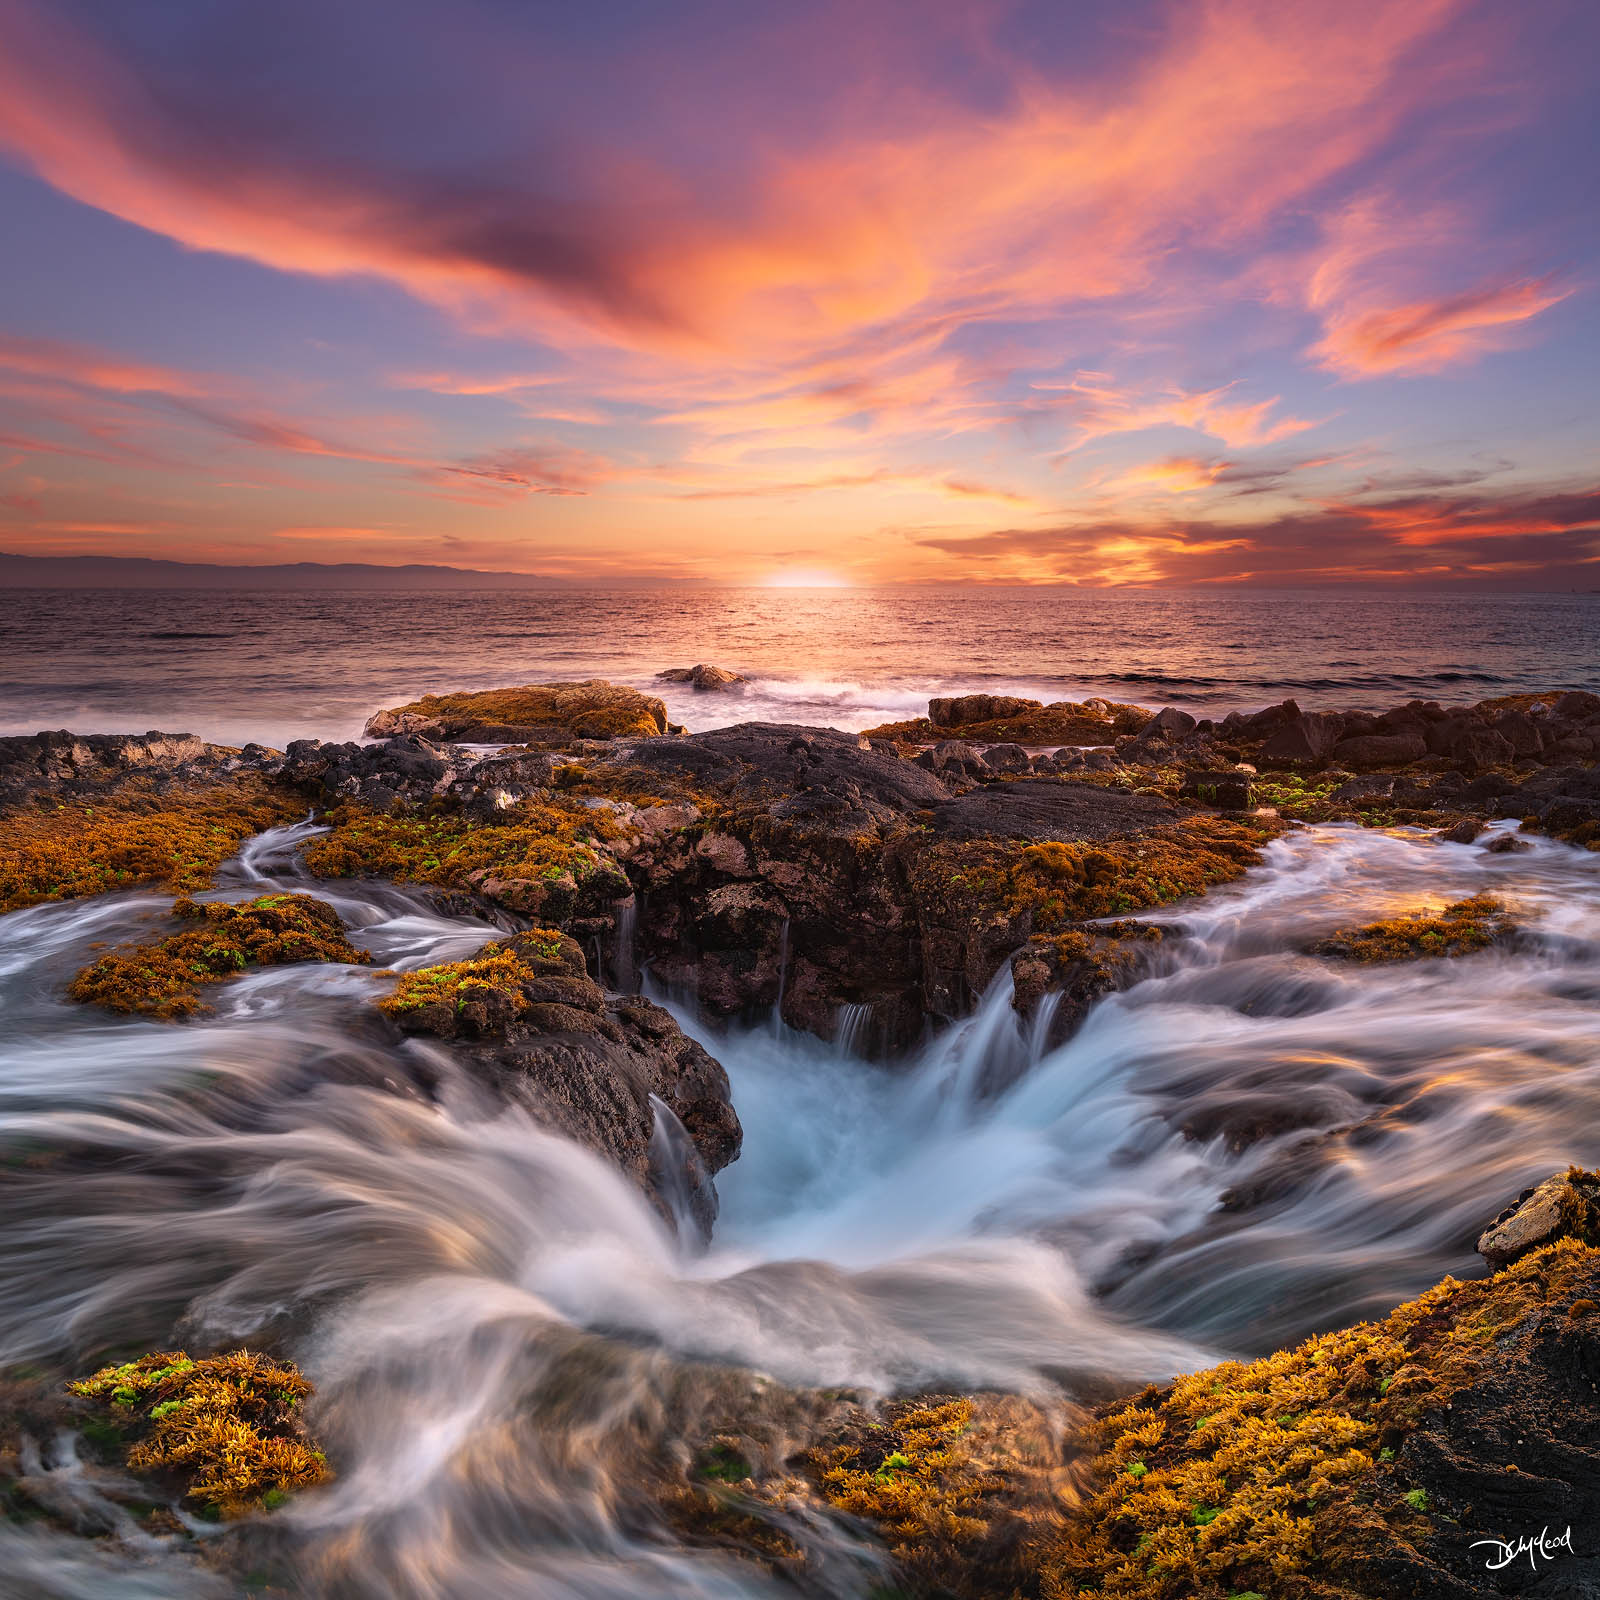 surge, big island, hawaii, ocean, waves, lava, sunset, photo